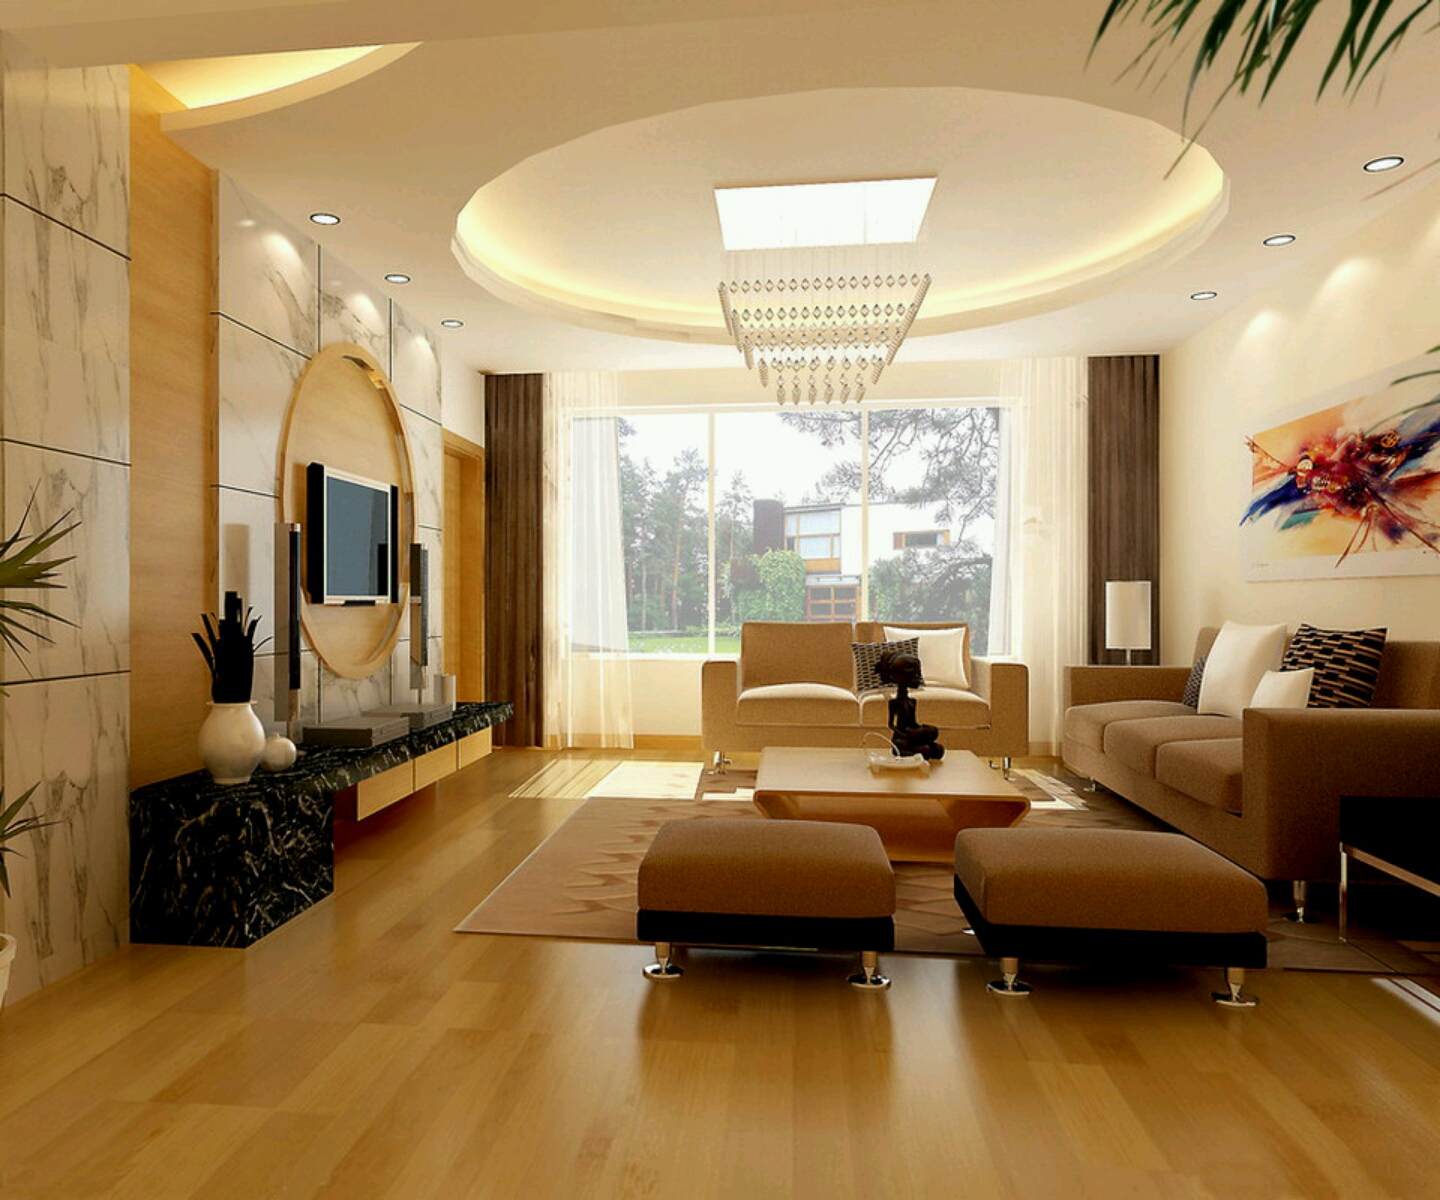 Modern interior decoration living rooms ceiling designs for Living room design ideas